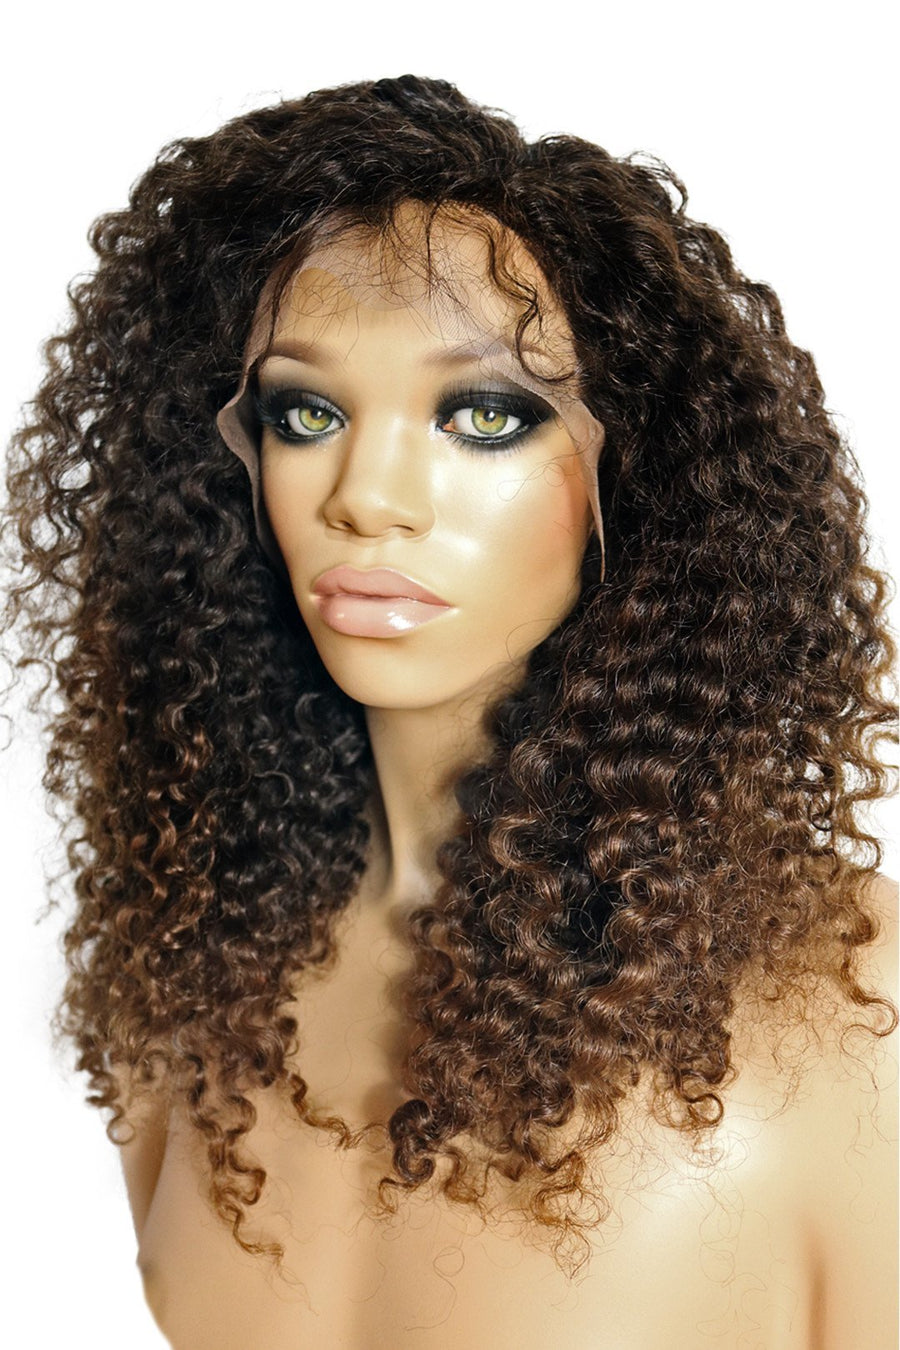 Simone Custom Full Lace Wig - Boudoir Beauté Hair